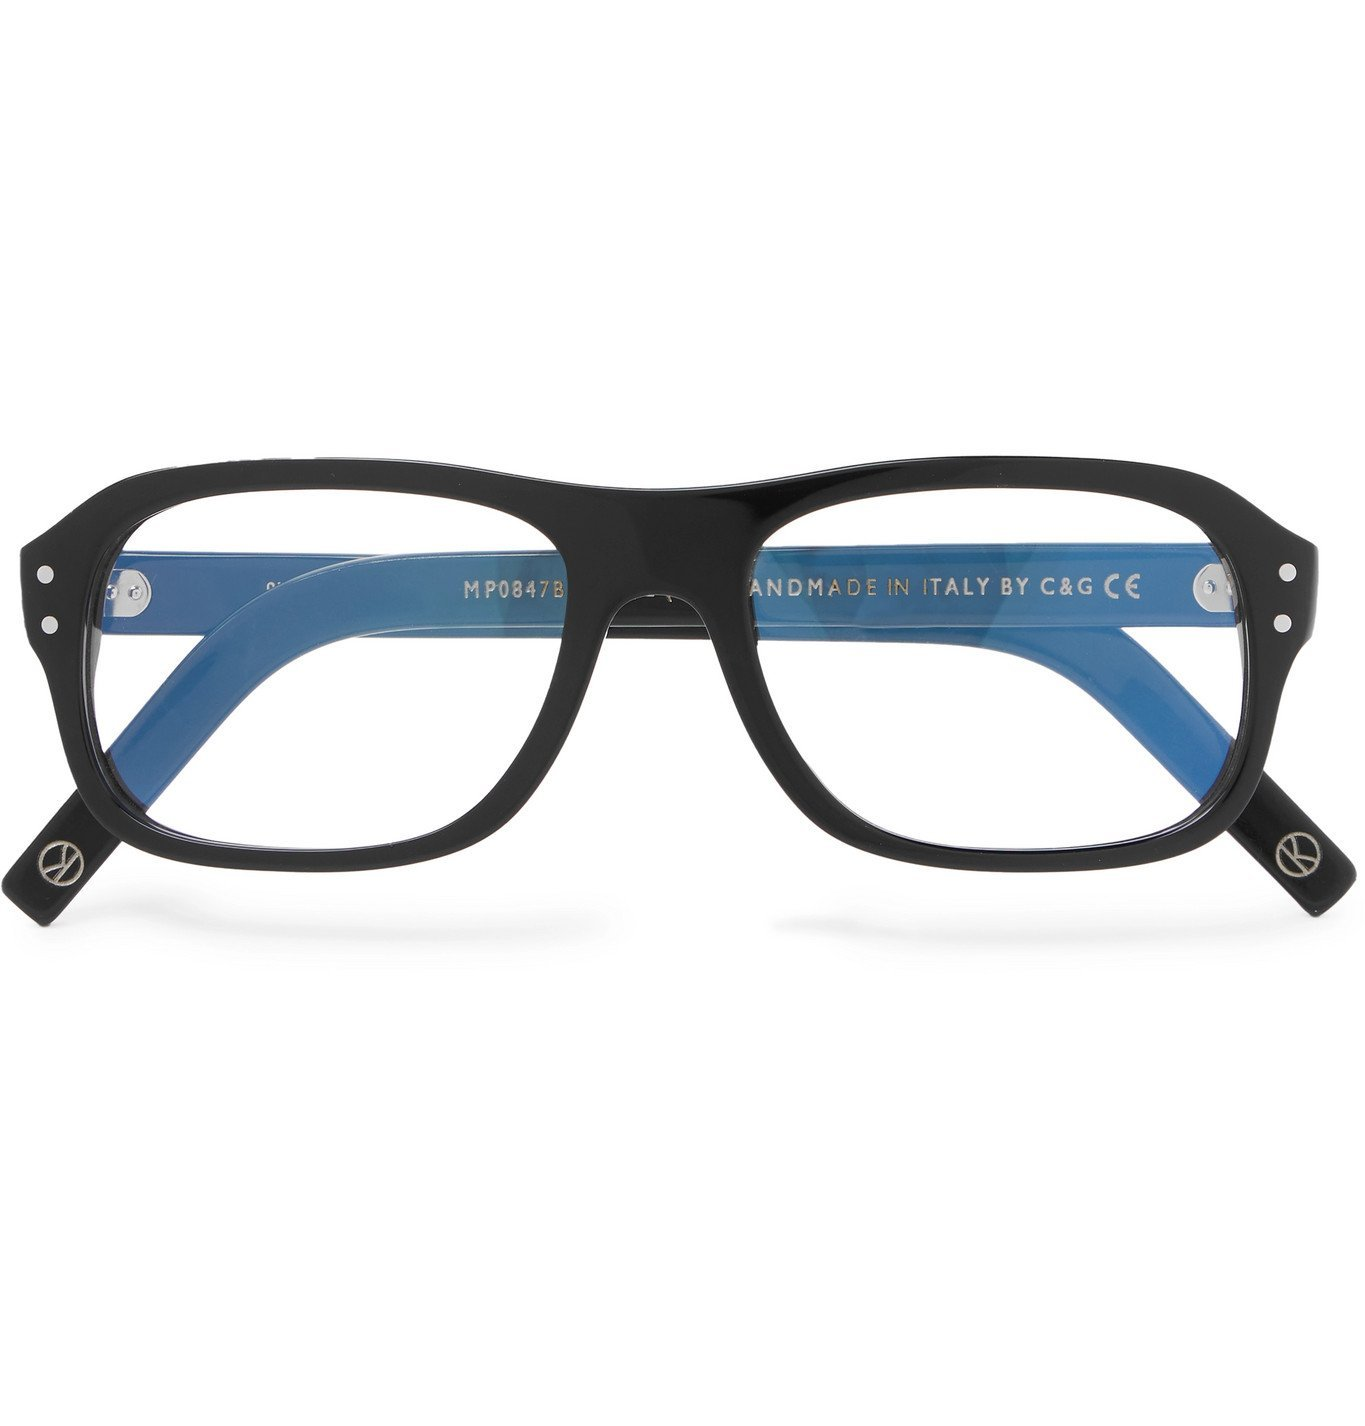 Photo: Kingsman - Cutler and Gross Eggsy's Square-Frame Acetate Optical Glasses - Black